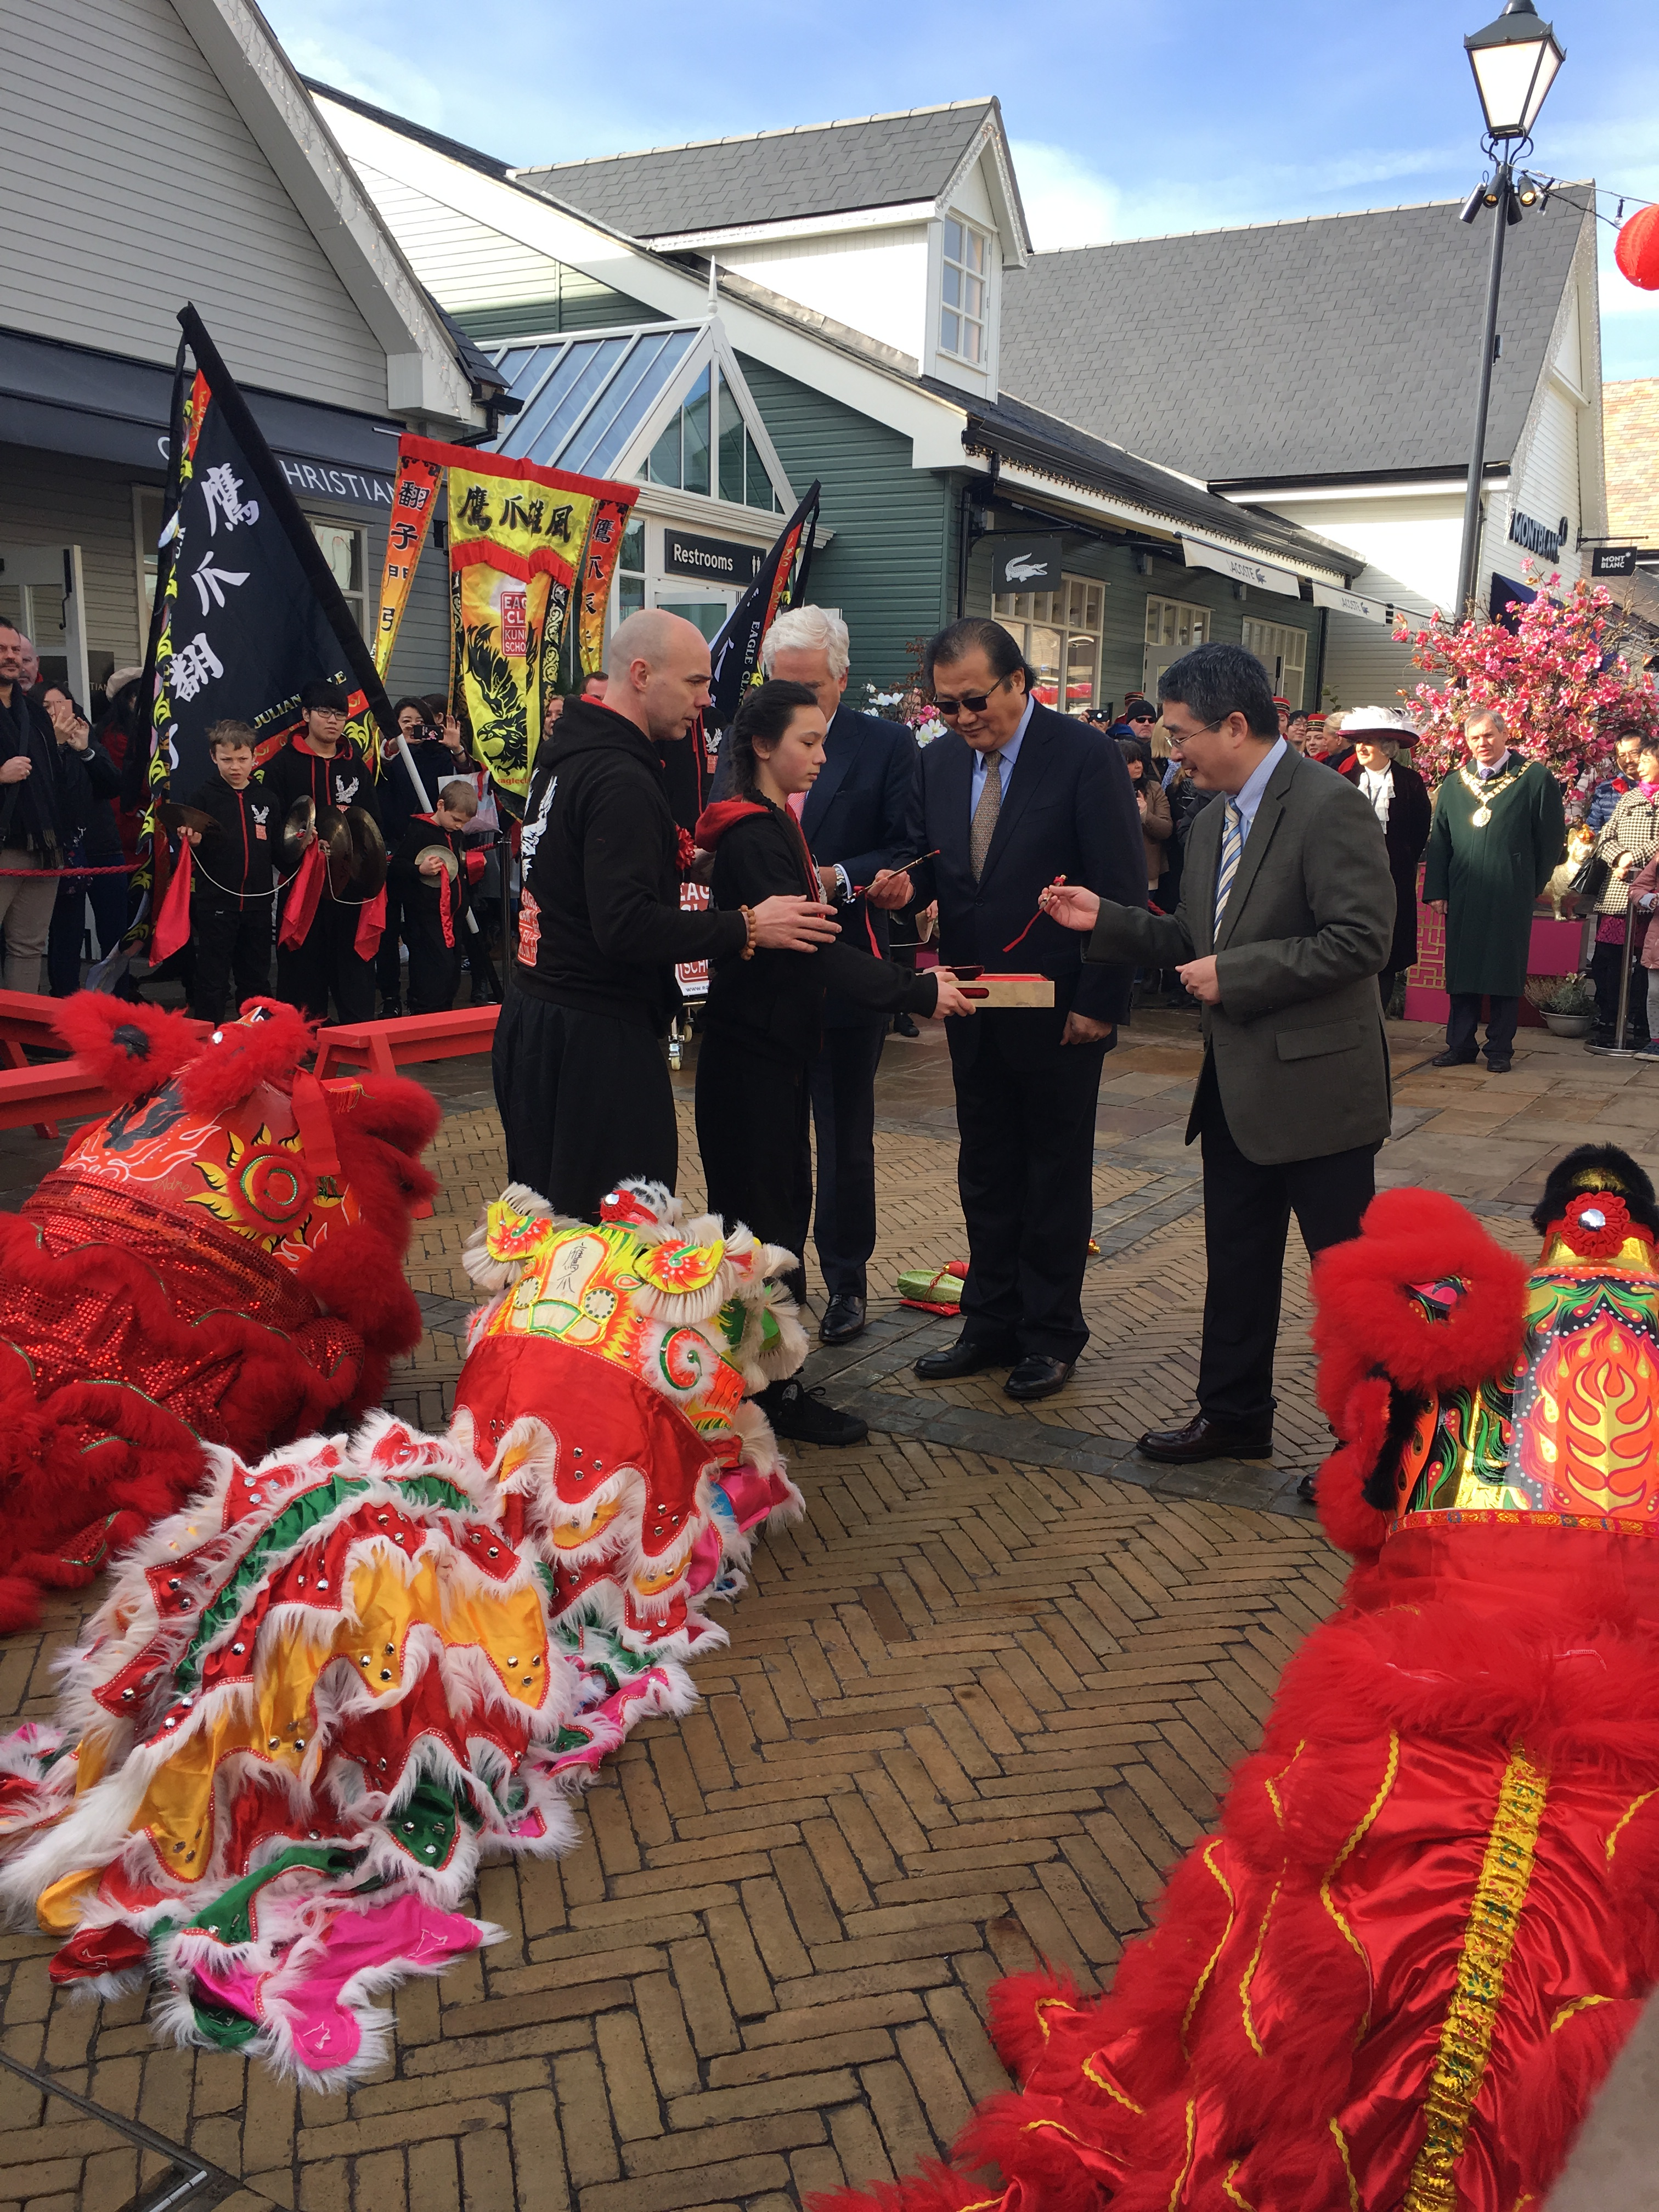 The eye dotting ceremony celebrating Chinese New Year in Bicester Village, Feb. 16 2018.